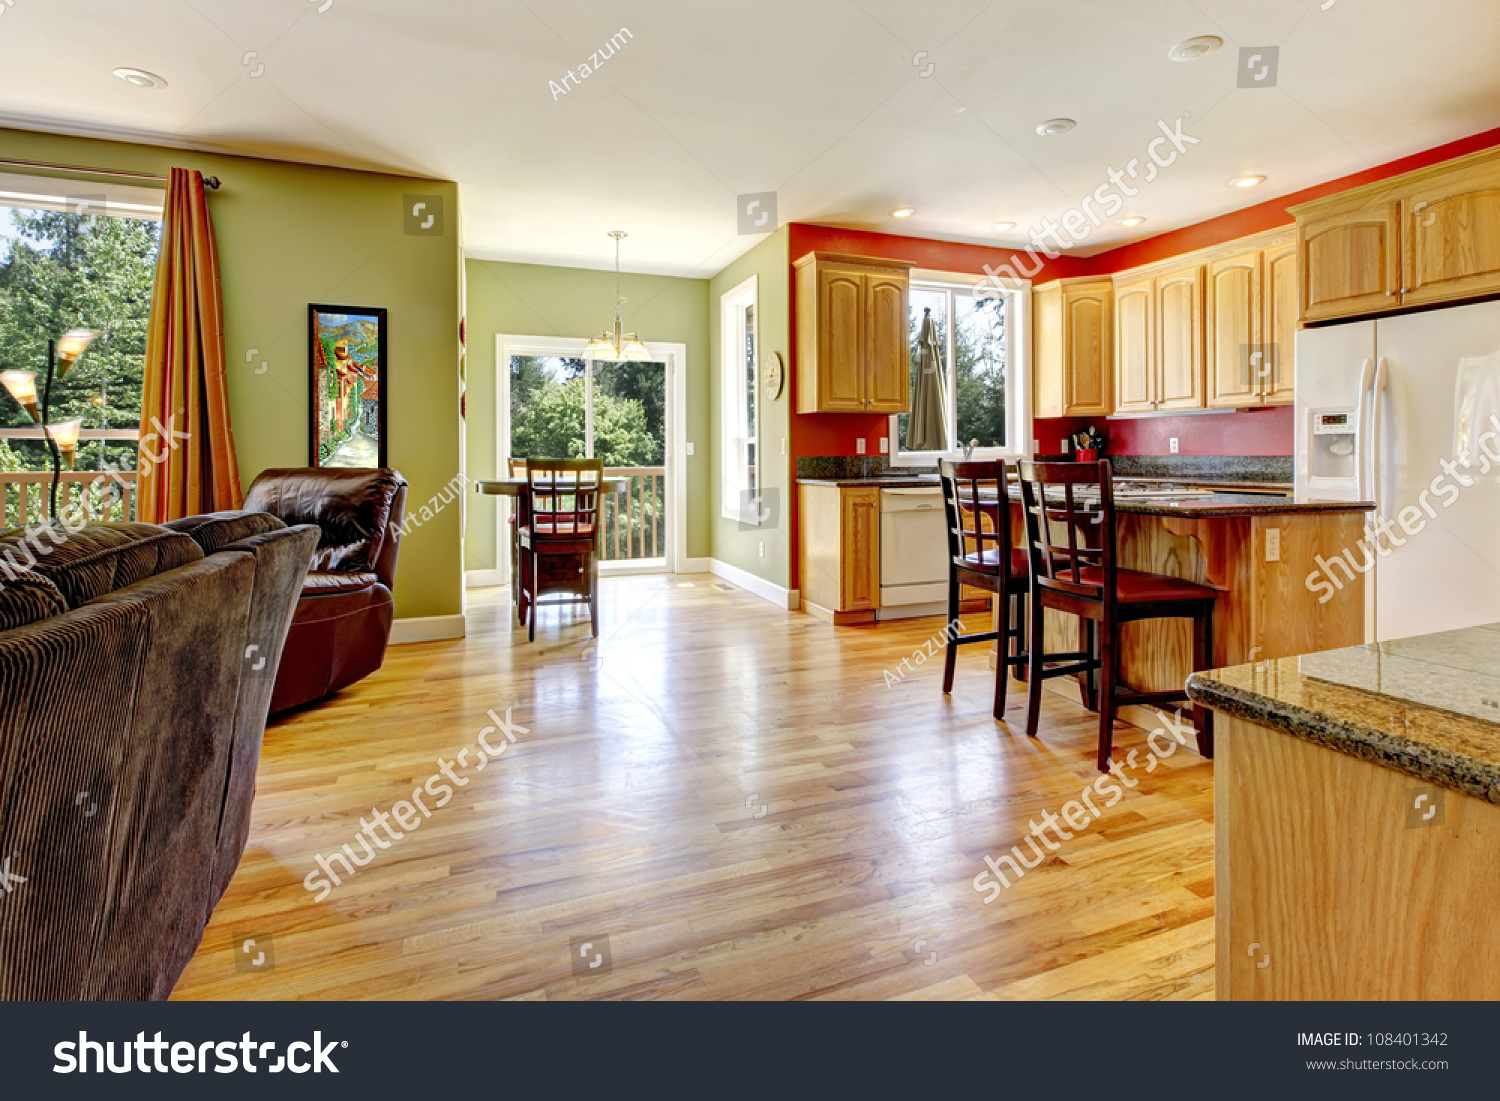 Green And Yellow Kitchen Kitchen Yellow Wood Floor Green Wall Stock Photo 108401342